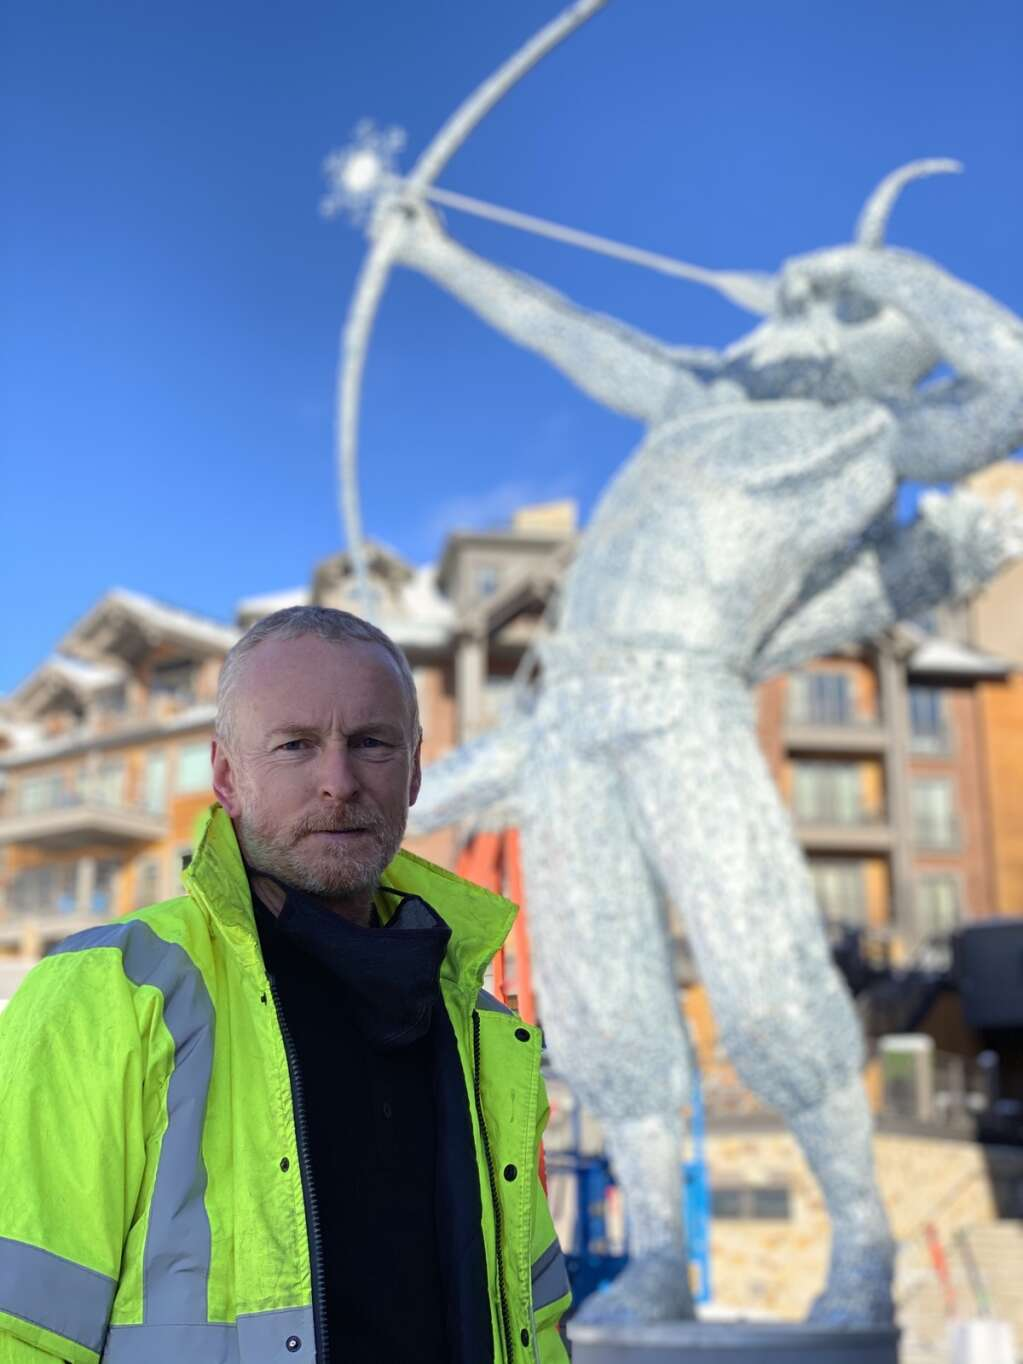 Sculptor Andy Scott stands in front of his sculpture of Ullr on Nov. 11, the day it was installed in Breckenridge. | Photo by Juli Rathke /Breckenridge Grand Vacations